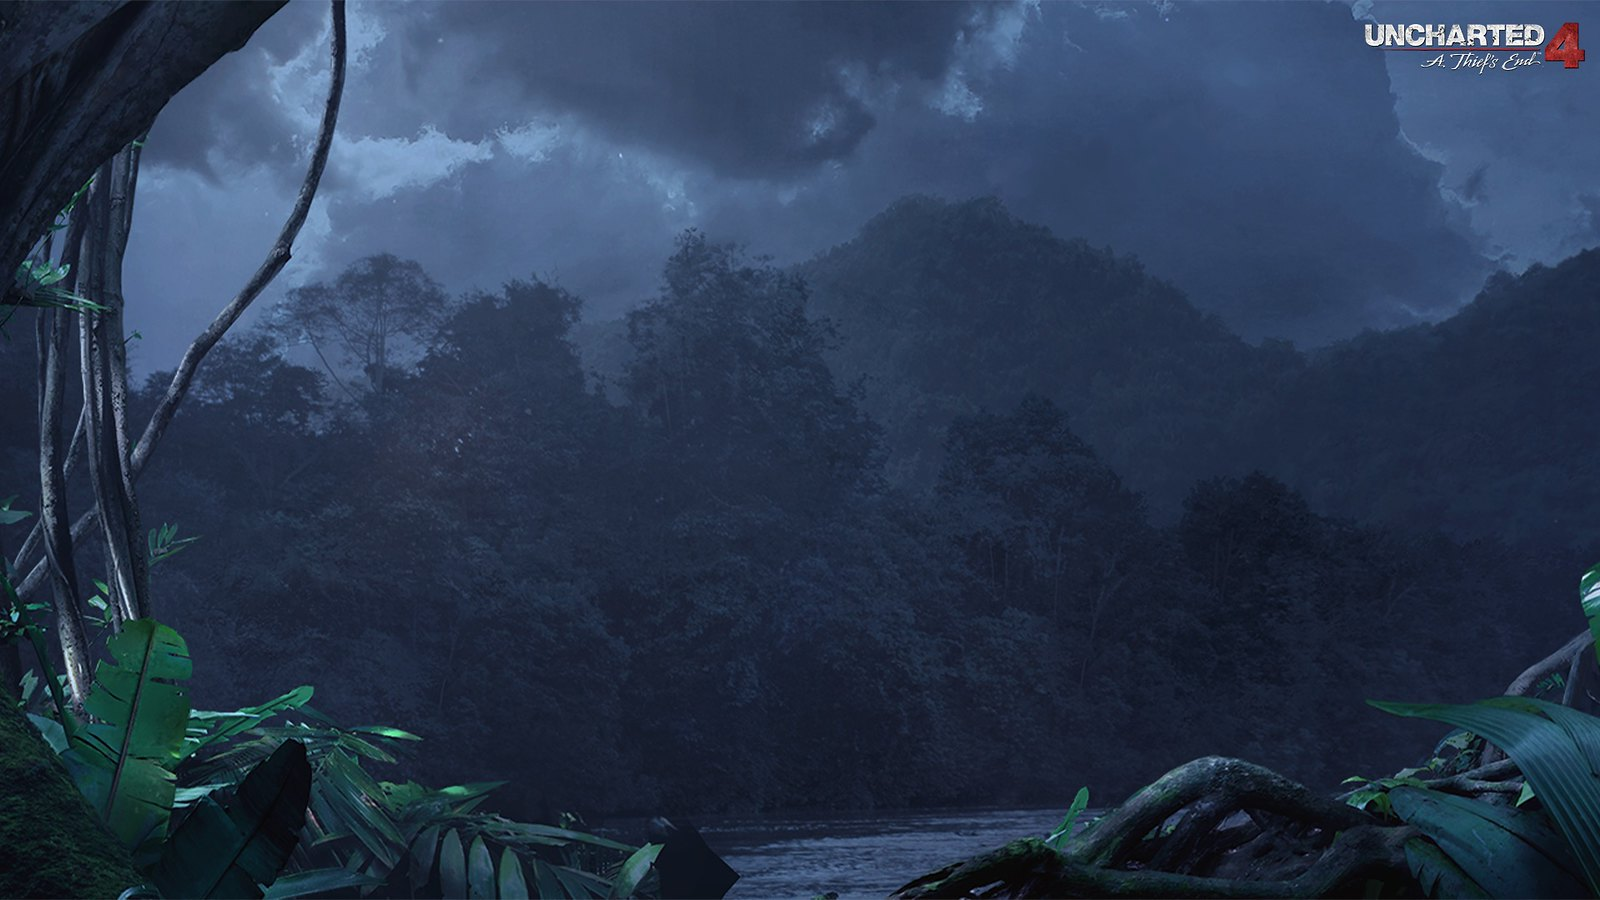 Video Conference Backgrounds - Uncharted